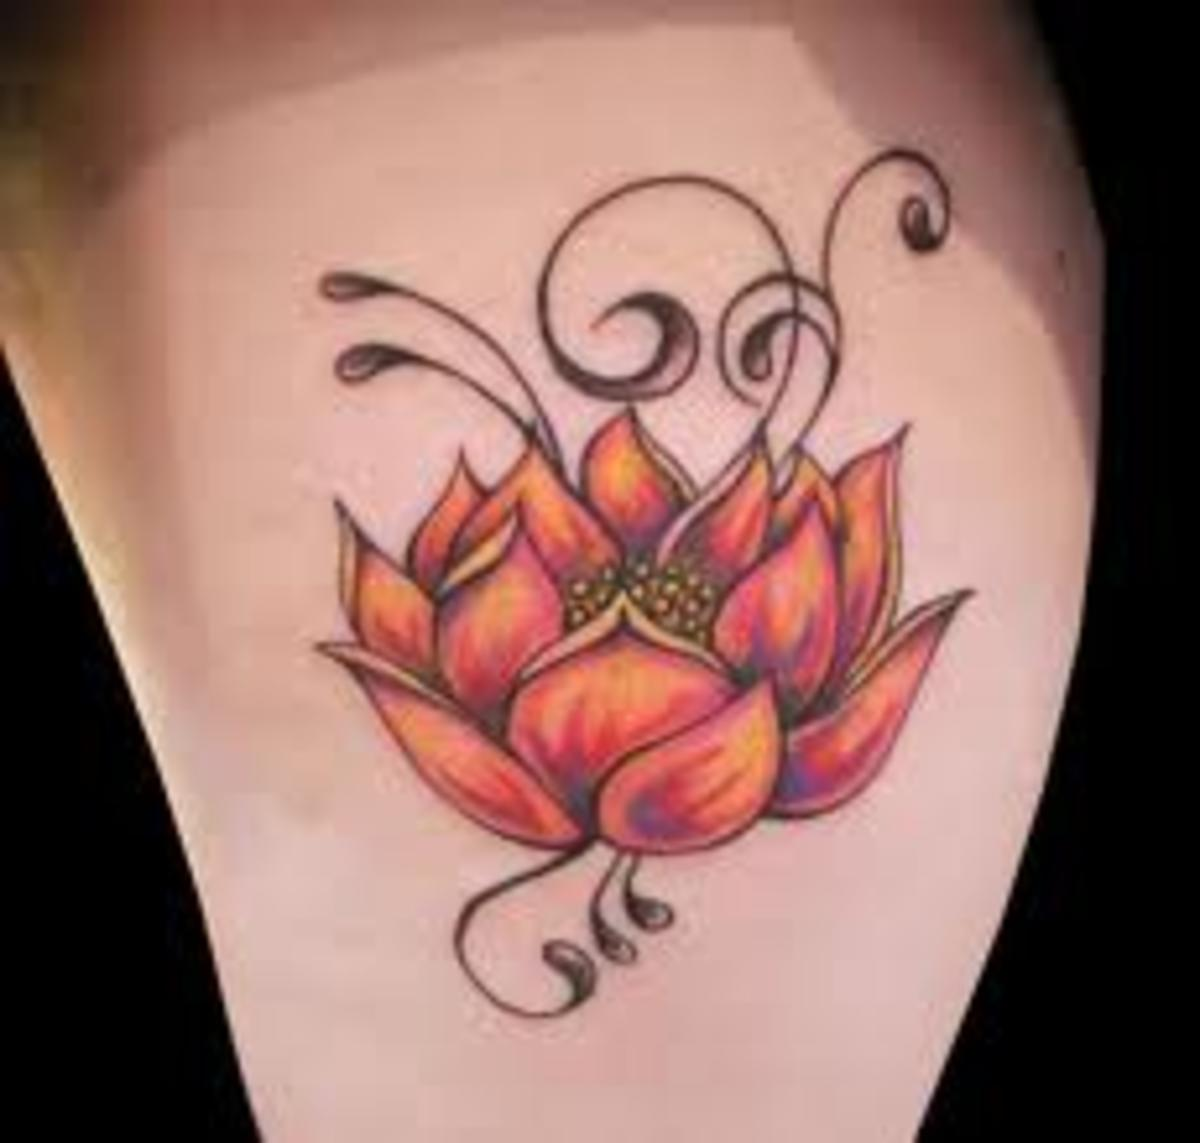 Lotus tattoo and lotus tattoo meanings lotus flower tattoo ideas source mightylinksfo Choice Image